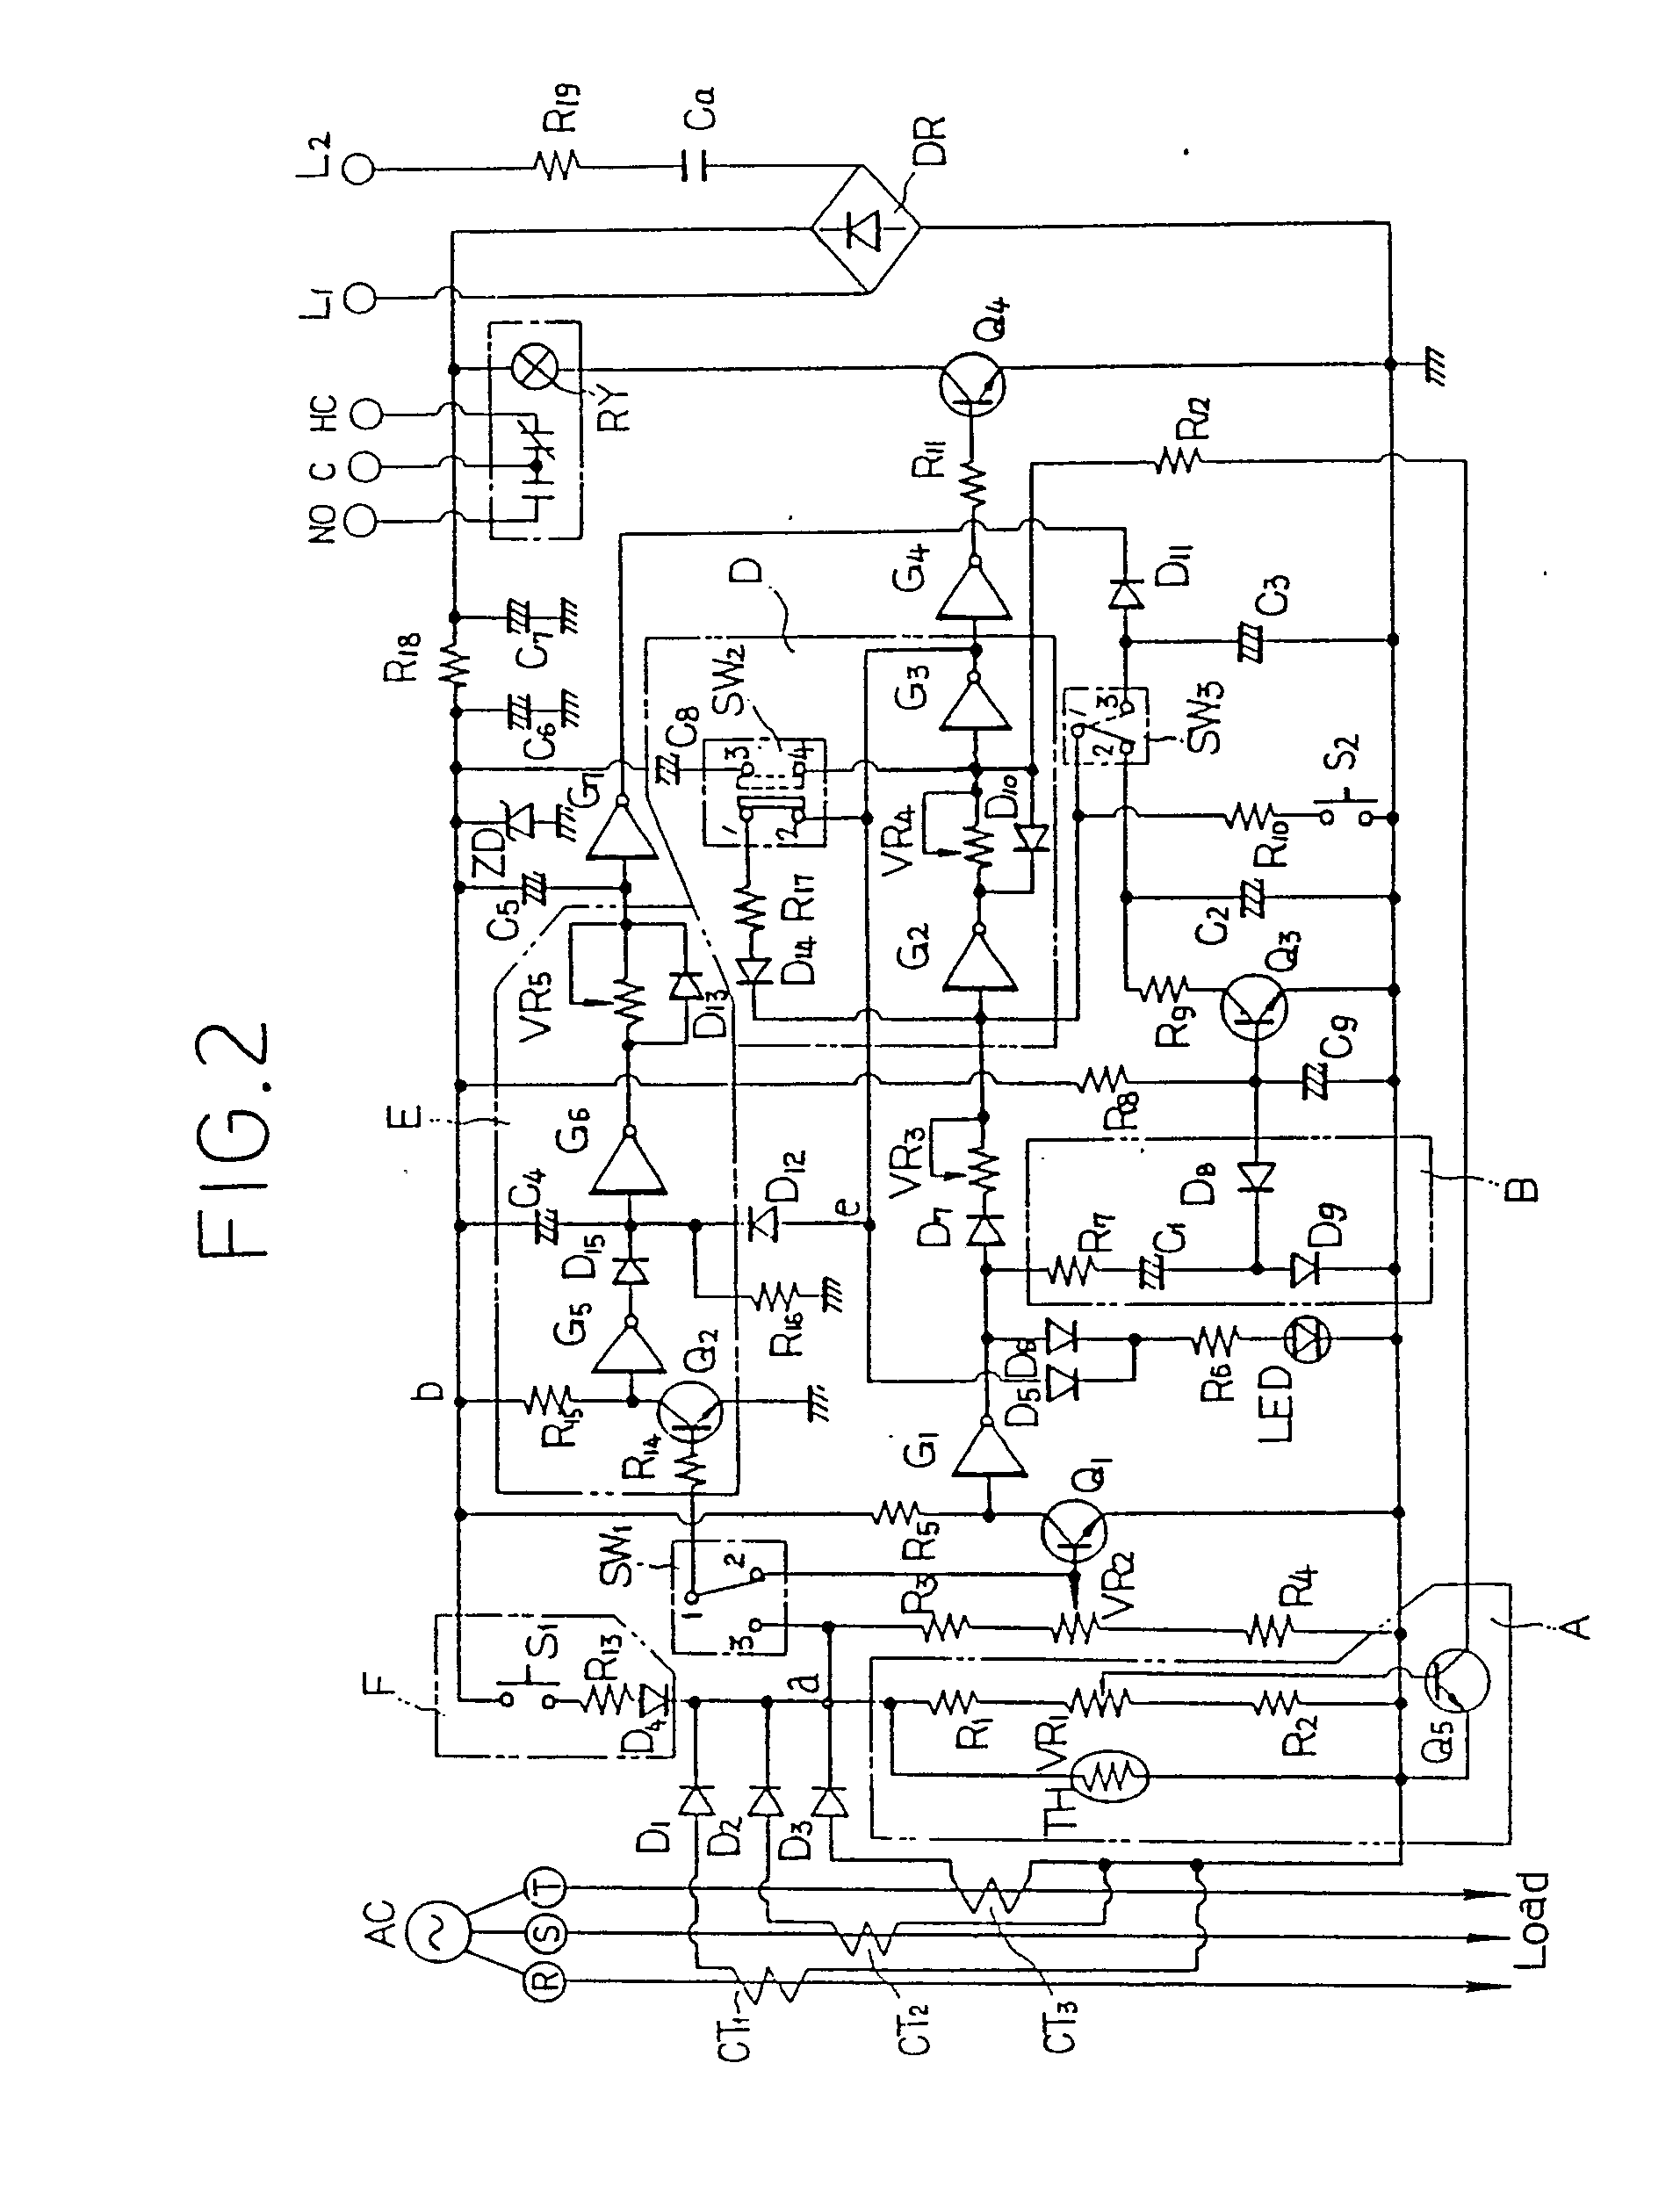 Patent EPB Electronic Overcurrent Relay Google Patents - Electric relay invented